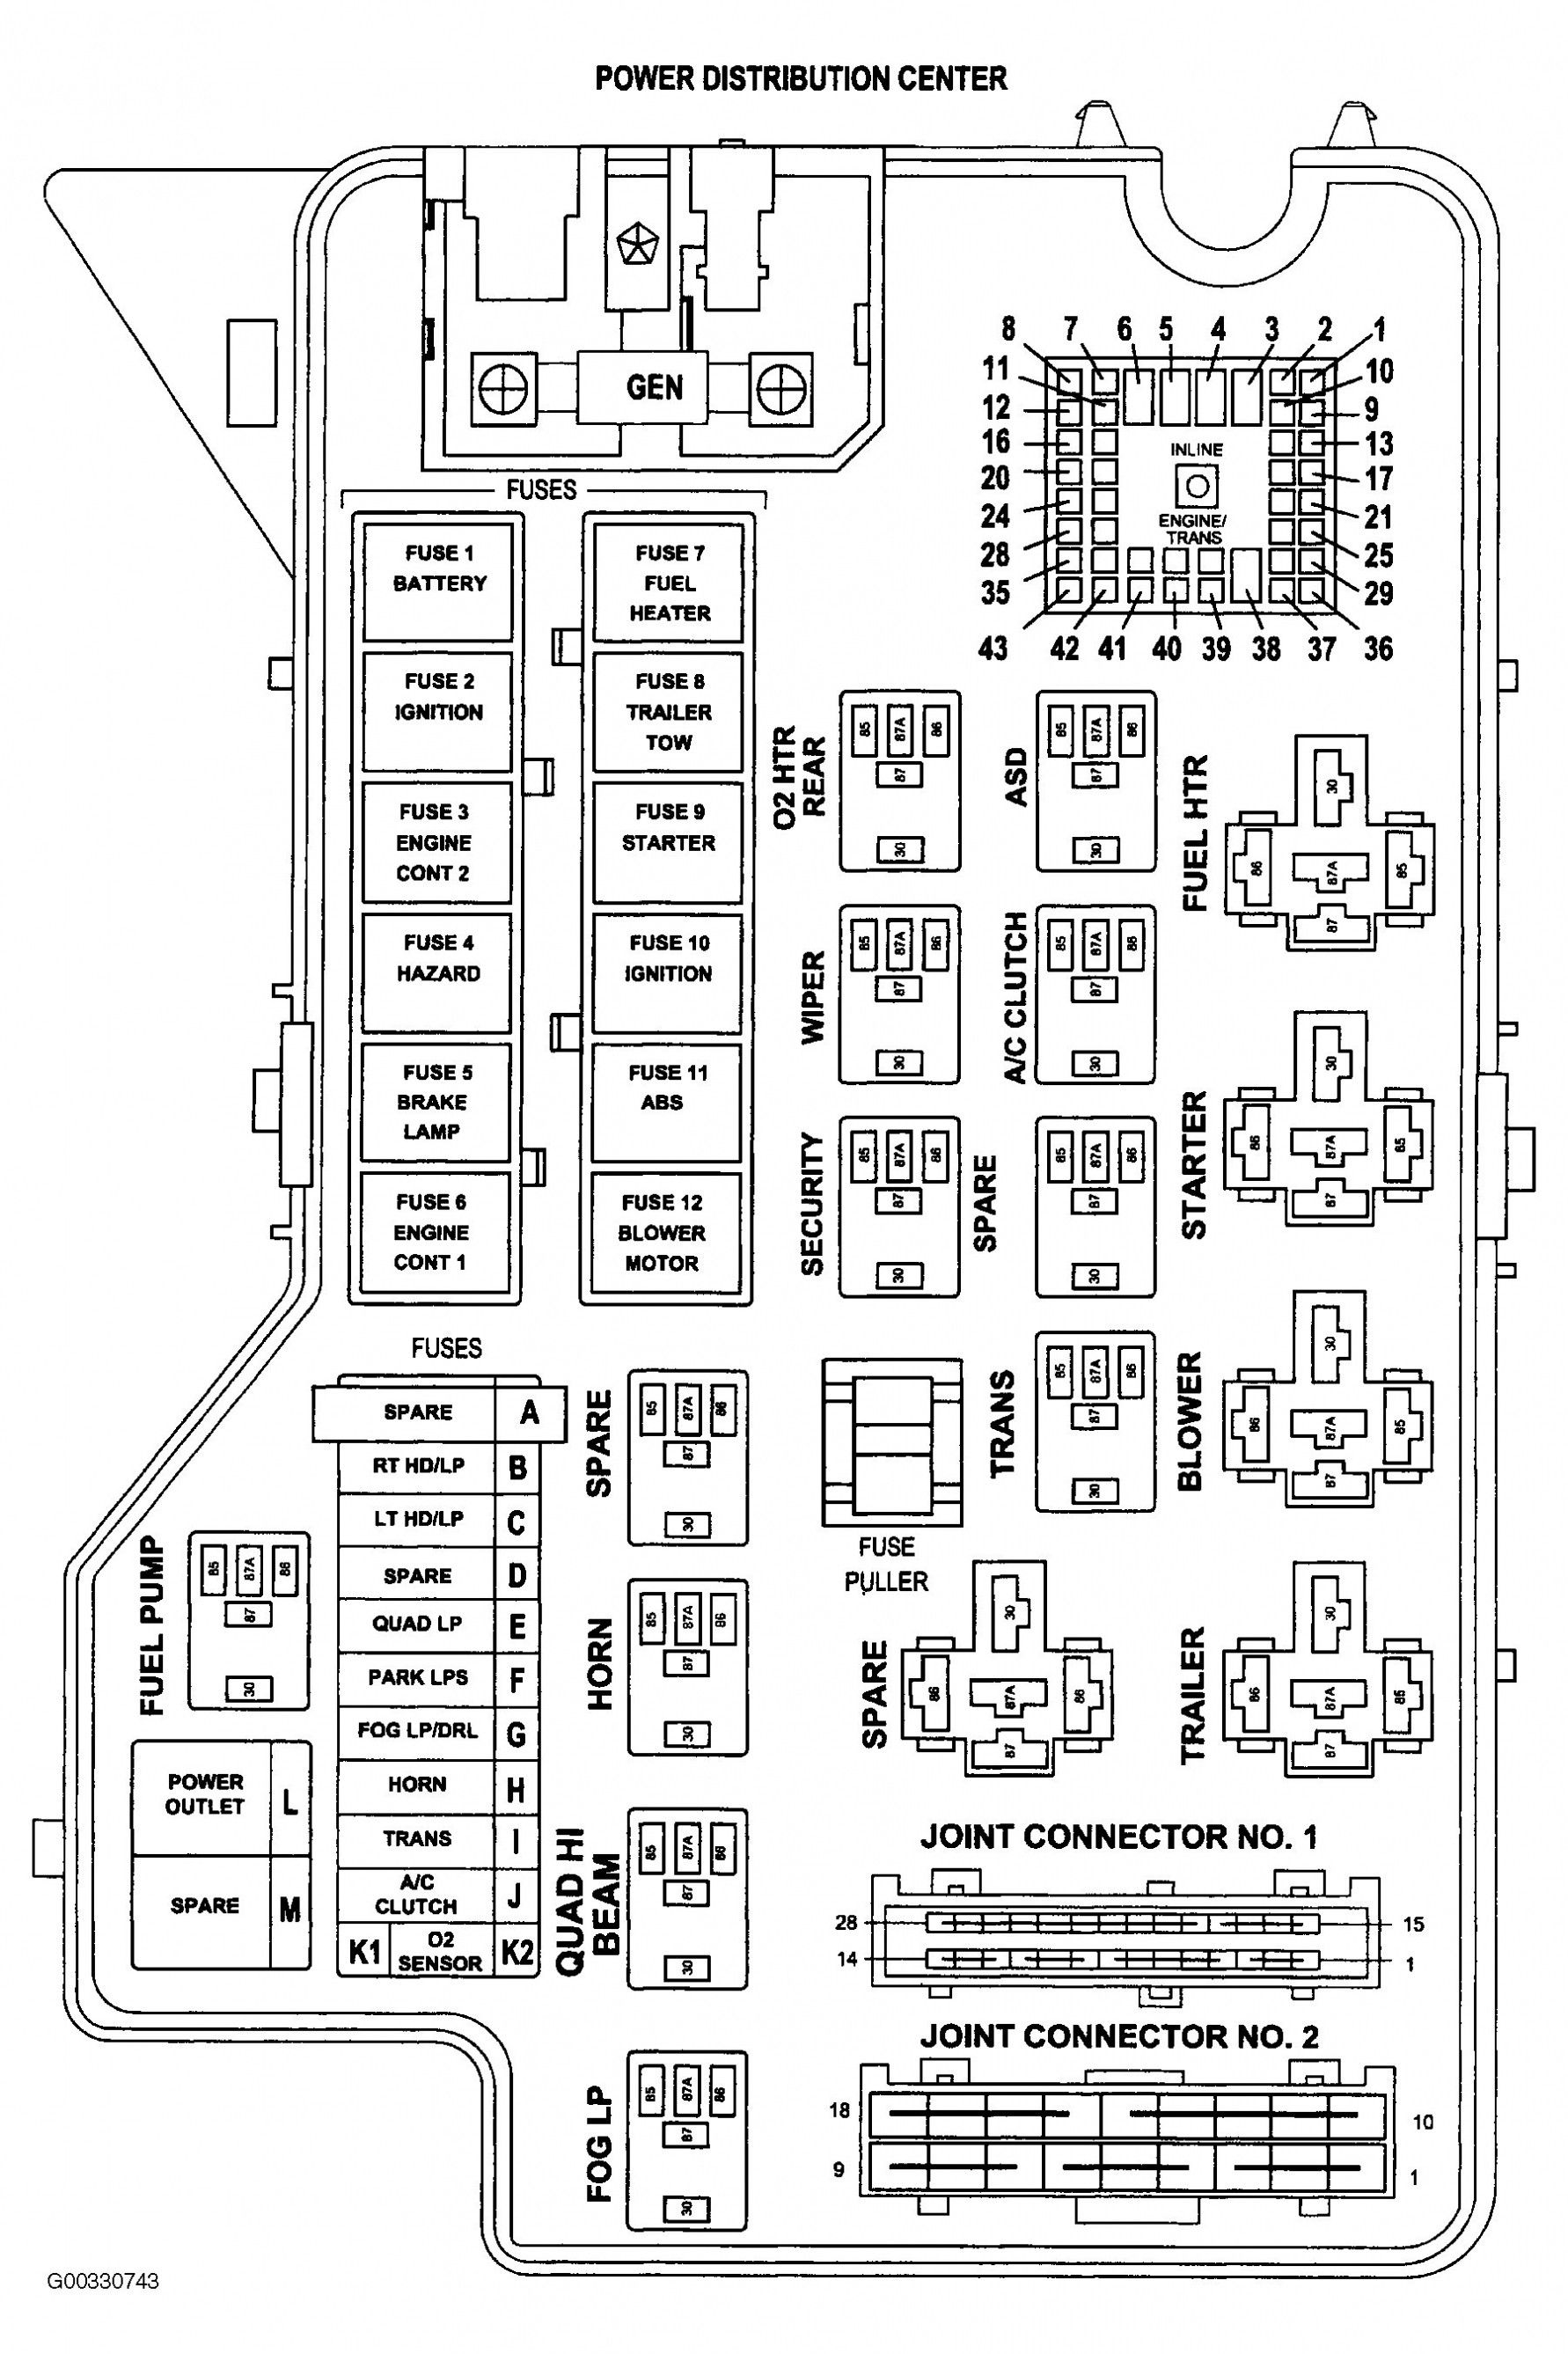 New 2011 Dodge Ram 1500 Radio Wiring Diagram #diagram ...  C Radio Wiring Diagram on 85 c10 wheels, 85 c10 lights, 85 c10 frame, 85 c10 accessories, 85 c10 fuel tank, 85 c10 door, 85 c10 horn, 85 c10 parts, 85 c10 engine, 85 c10 suspension,